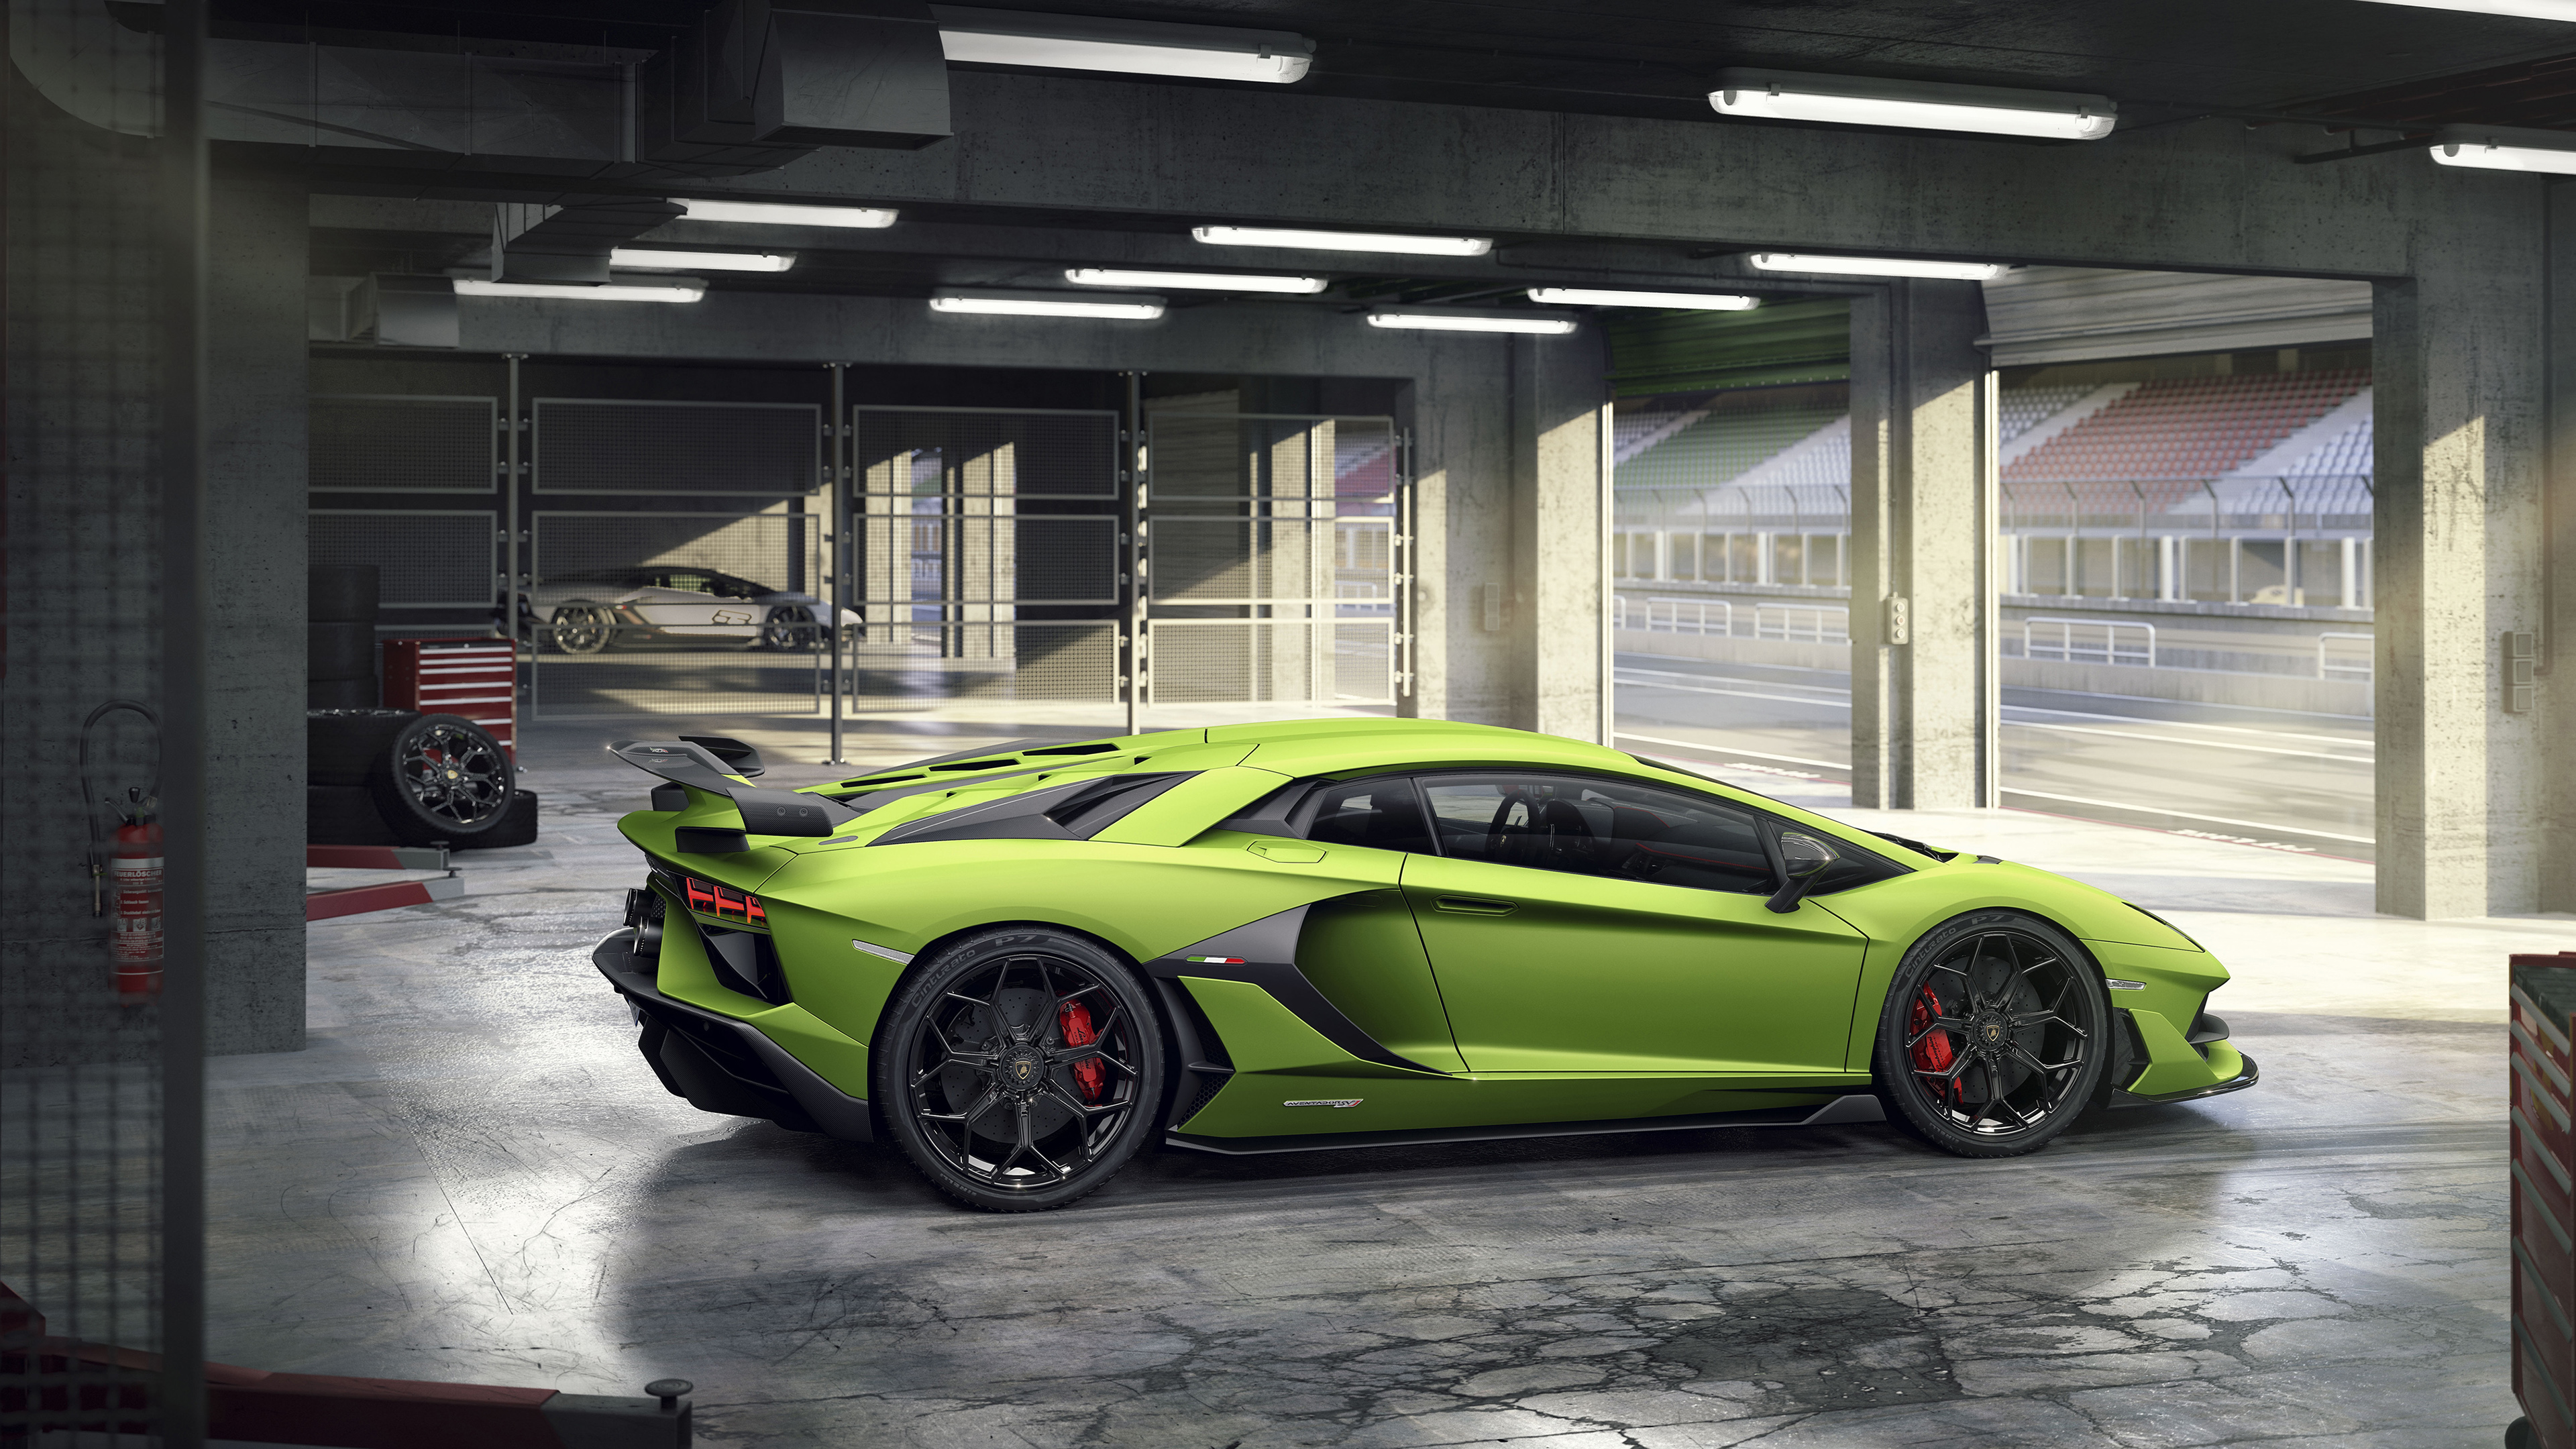 Lamborghini Aventador Svj 2018 4k Wallpapers Hd Wallpapers